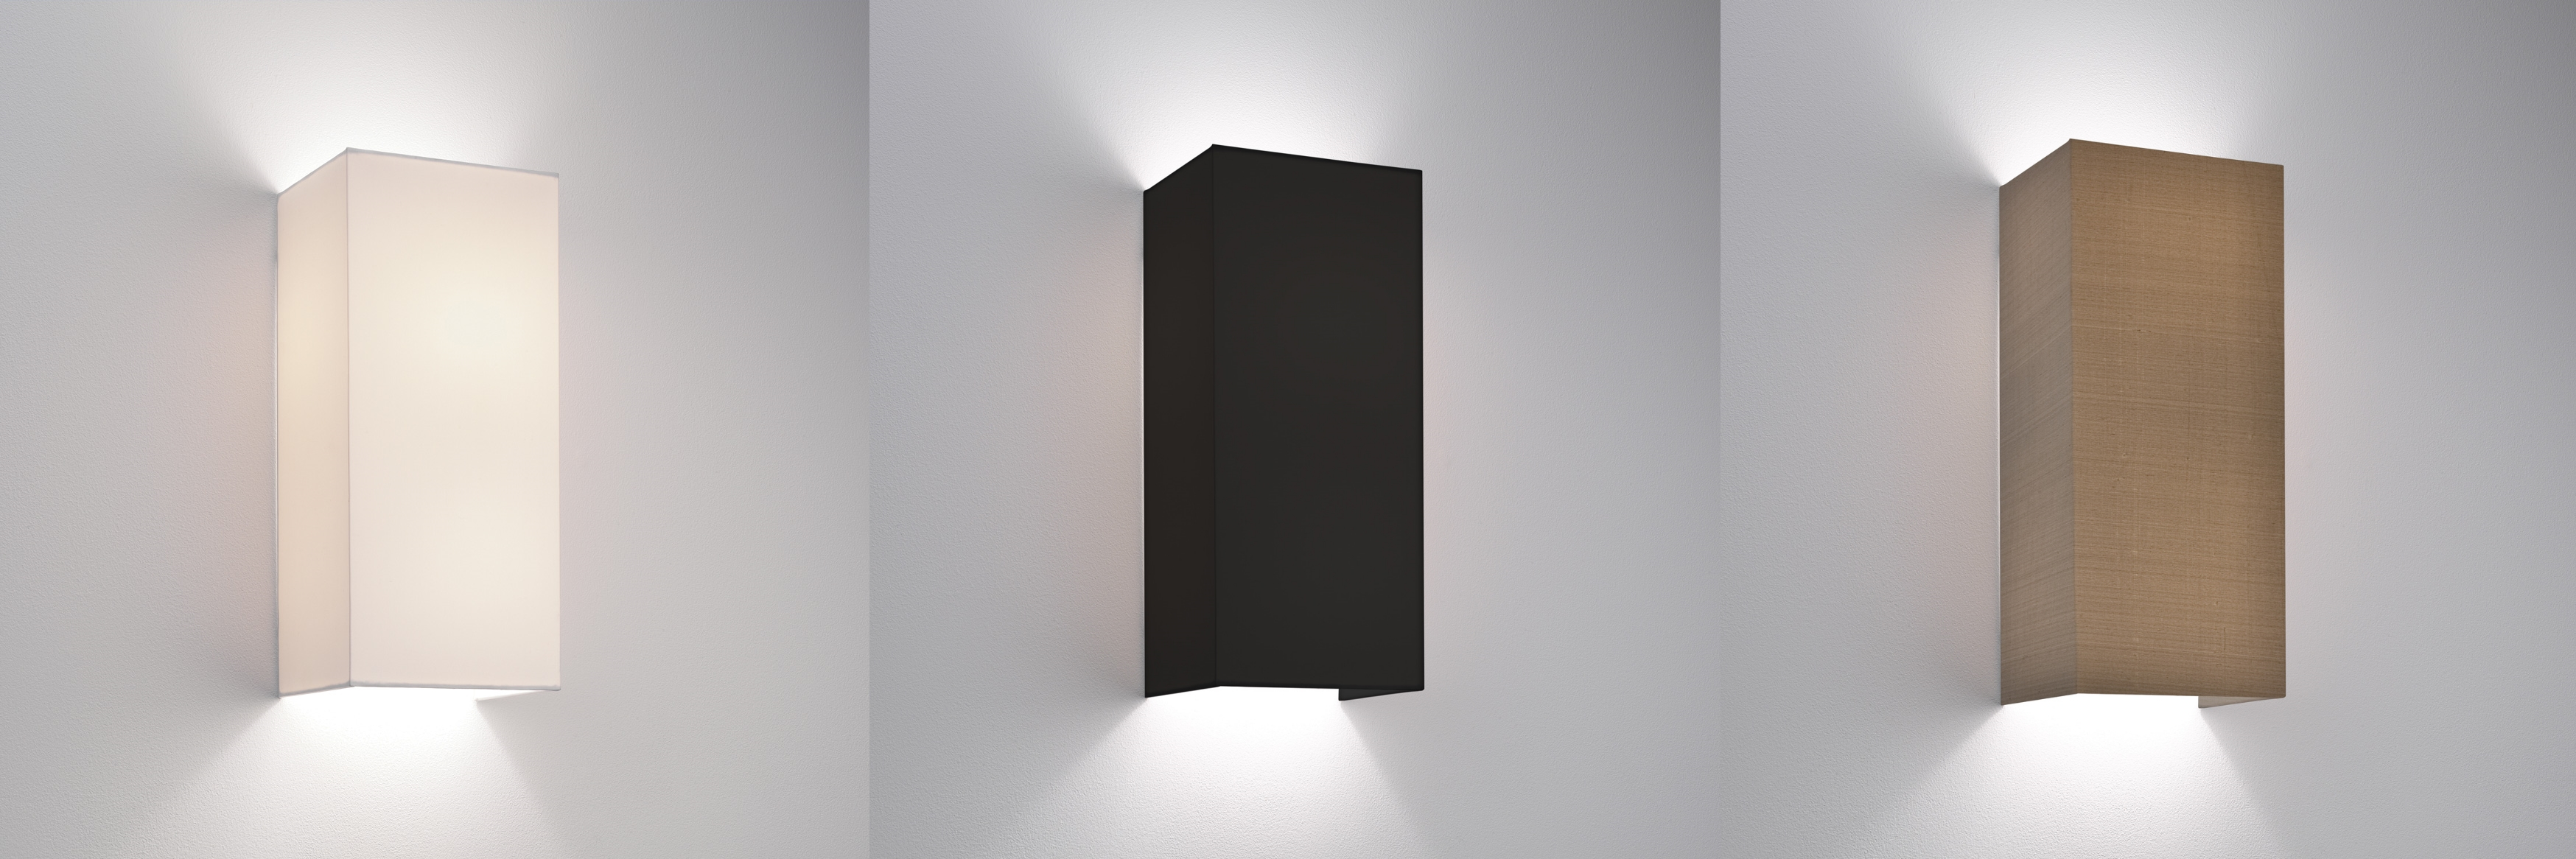 Black Wall Lamp Shades : Astro Chuo 380 fabric wall light shade 2x60W E27 white black oyster eBay